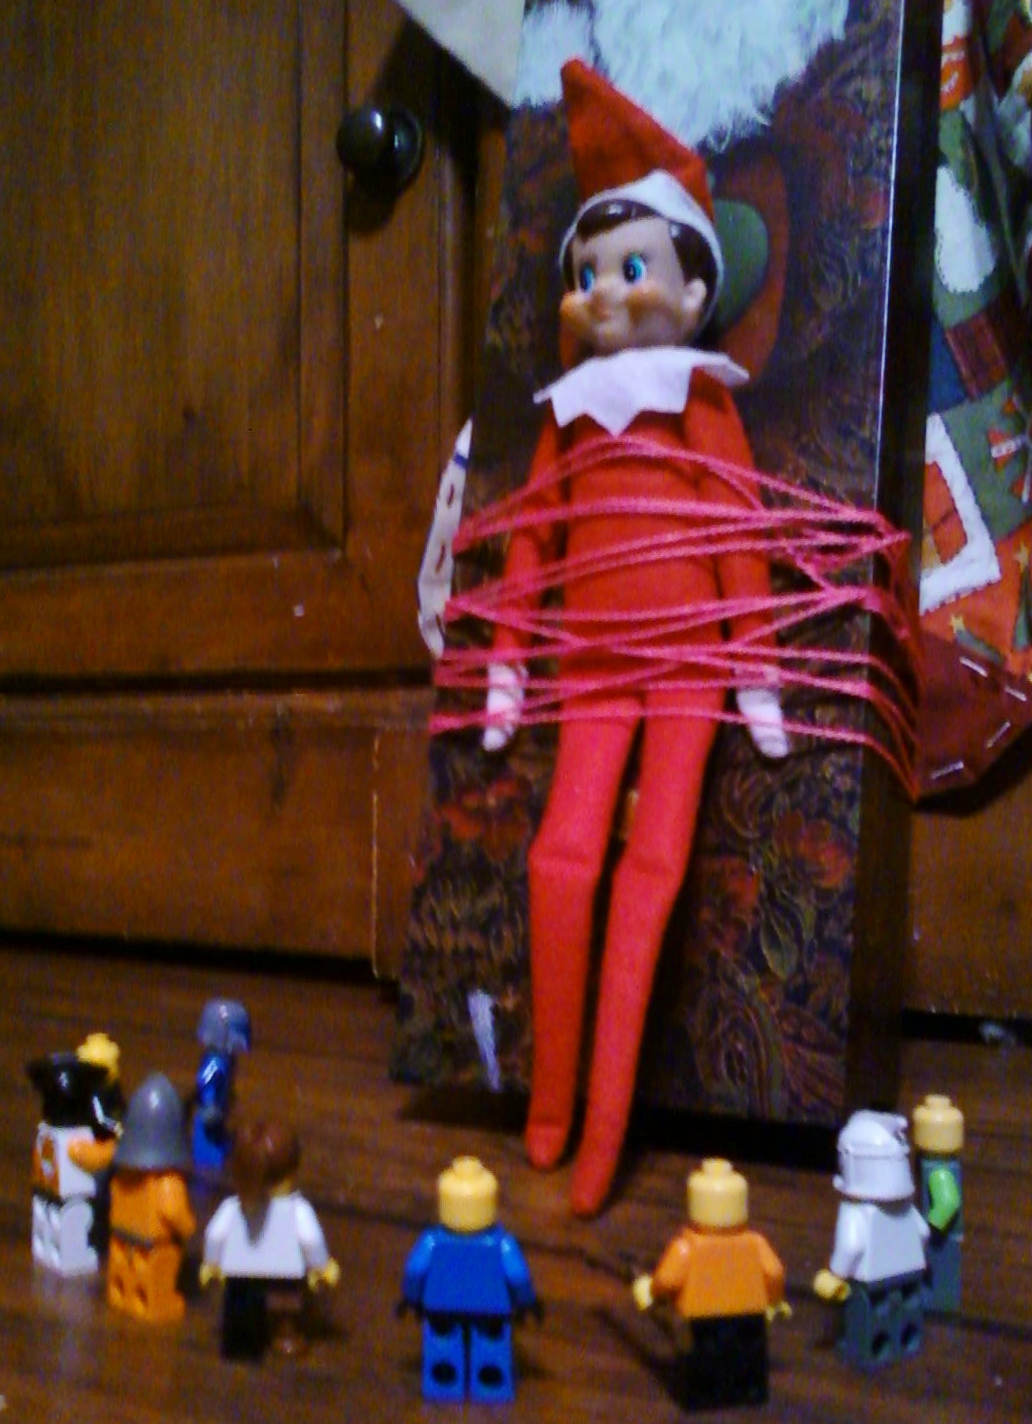 Do You Smell That Elf On The Shelf